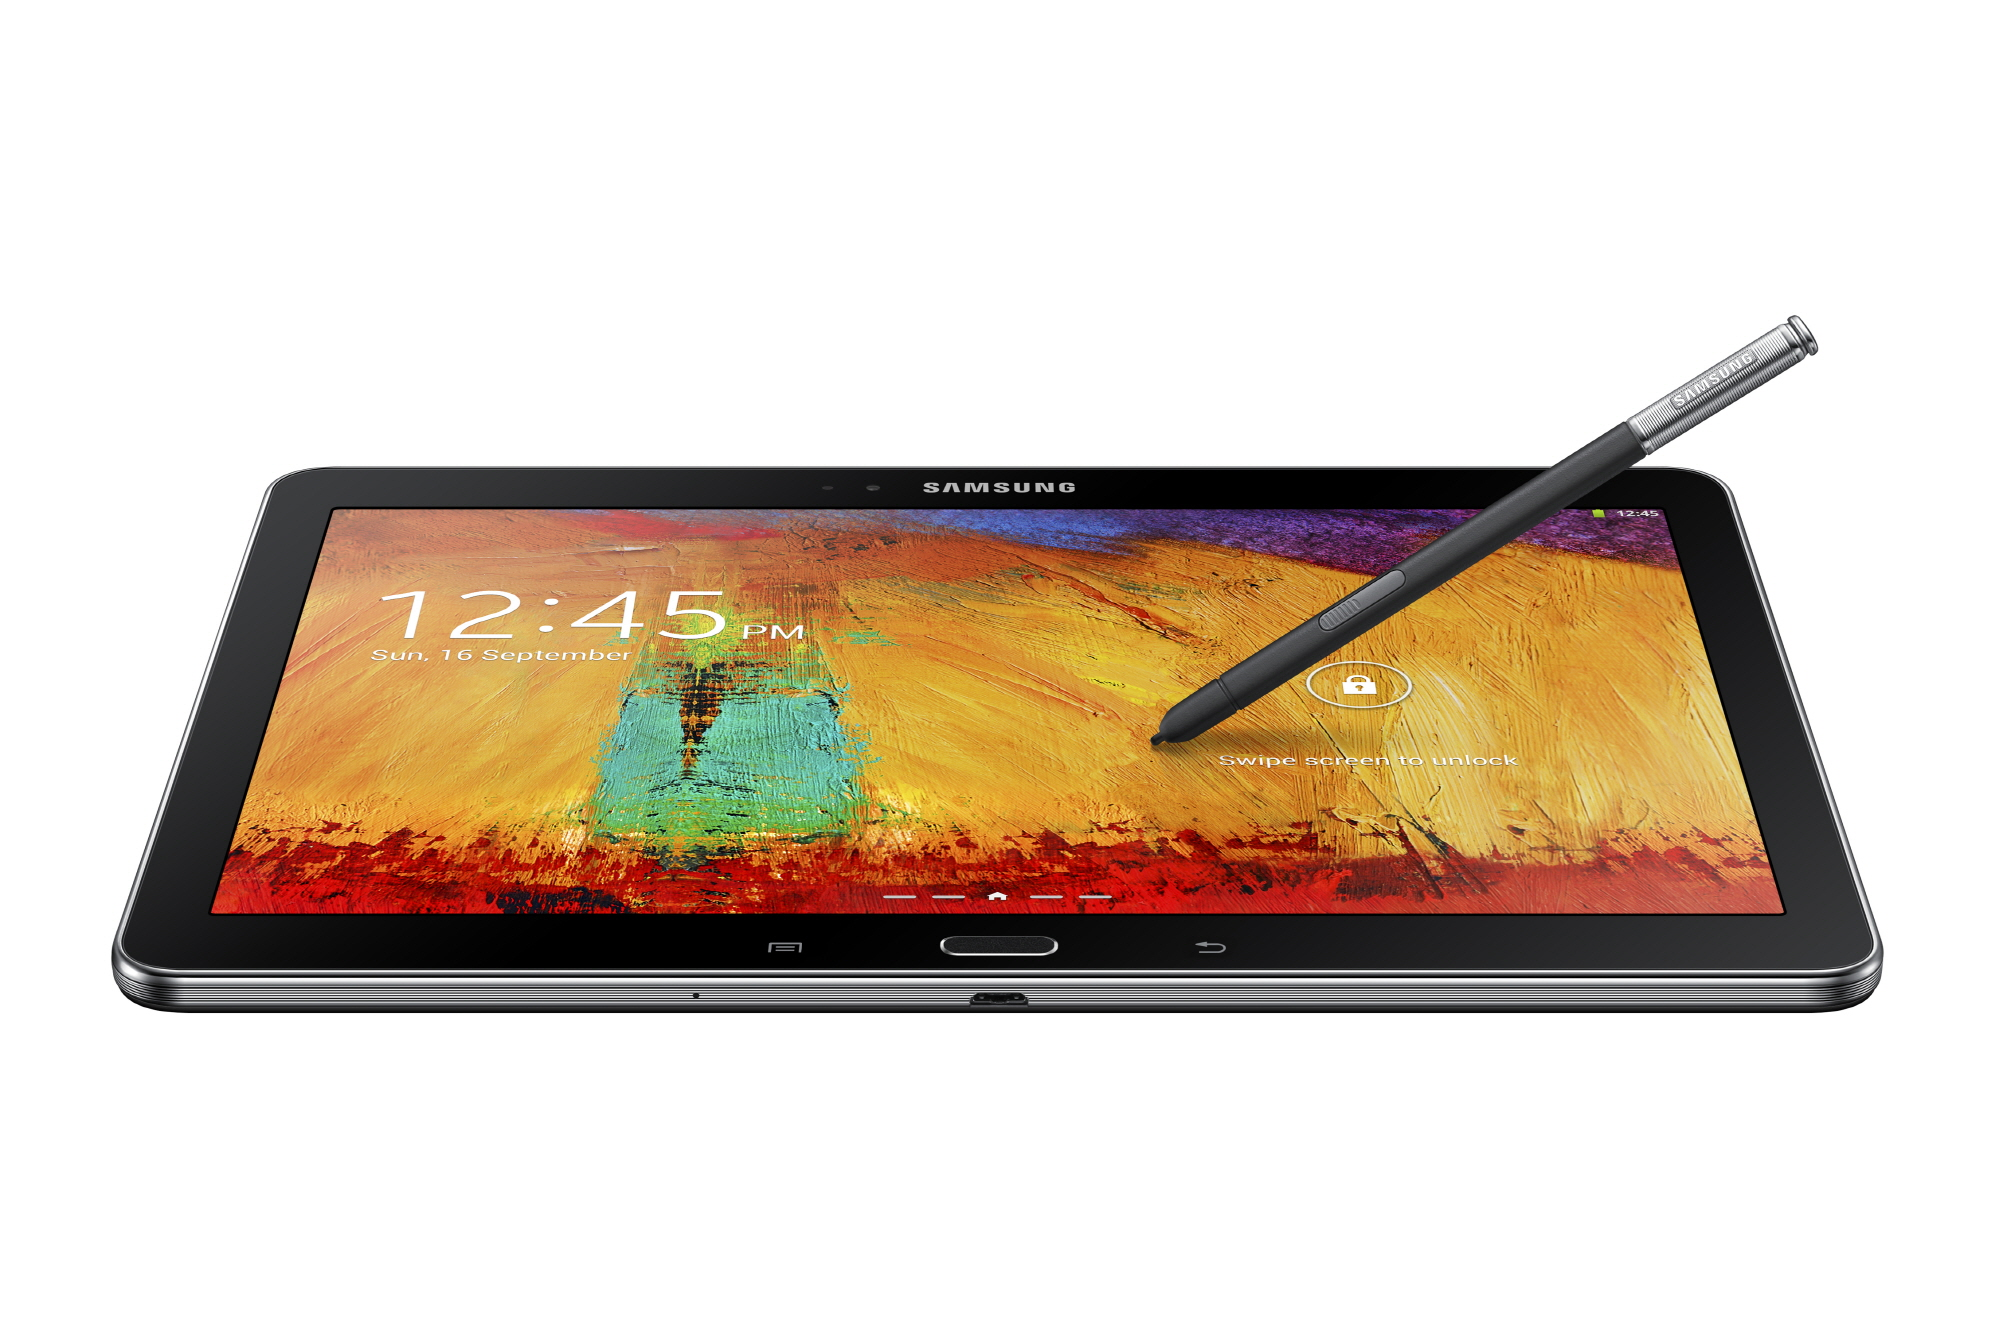 how to uninstall applications on samsung galaxy tab 10.1